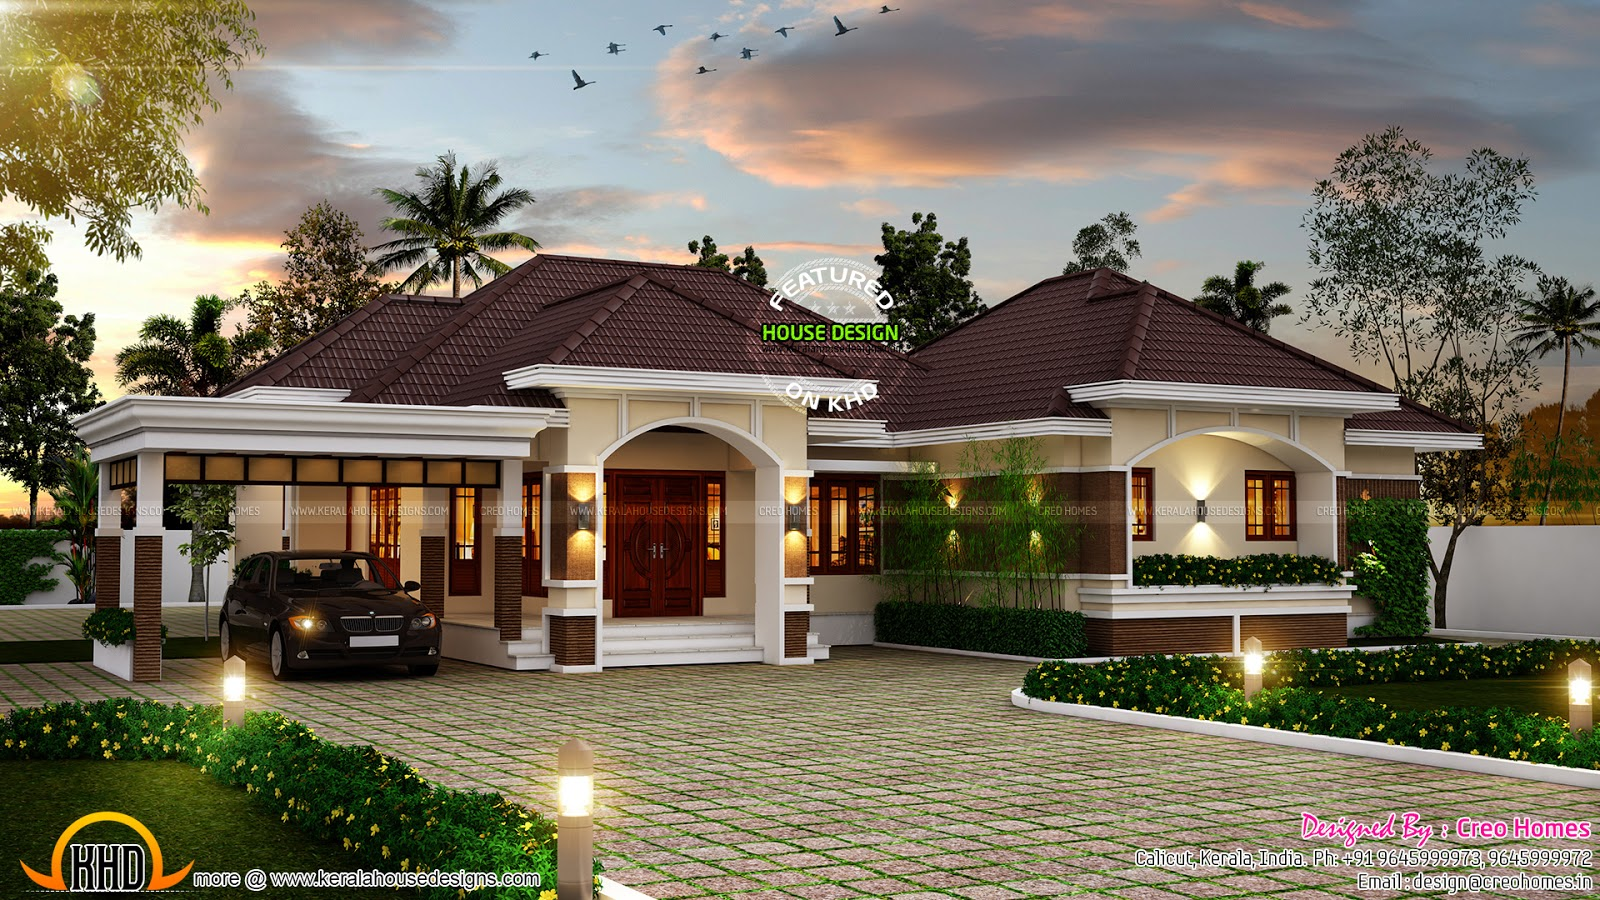 Outstanding bungalow in kerala kerala home design and for 4 bedroom bungalow house designs